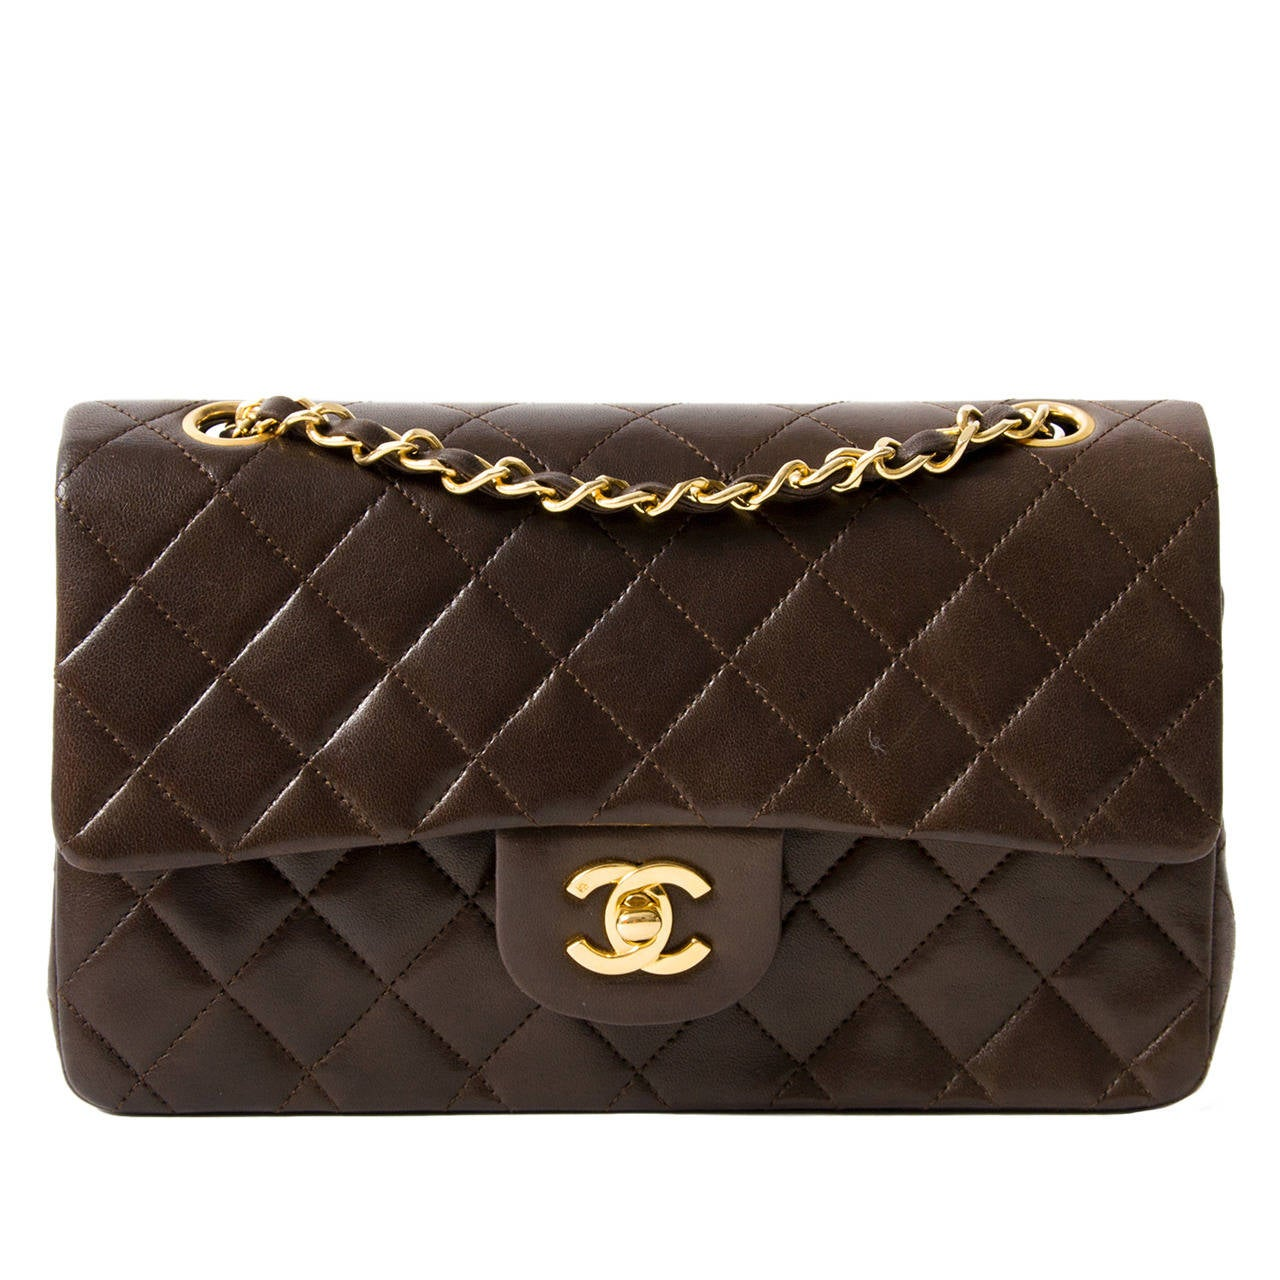 8ed3d02831c9 Chanel Small Classic Flap Bag in Chocolate Brown GHW at 1stdibs